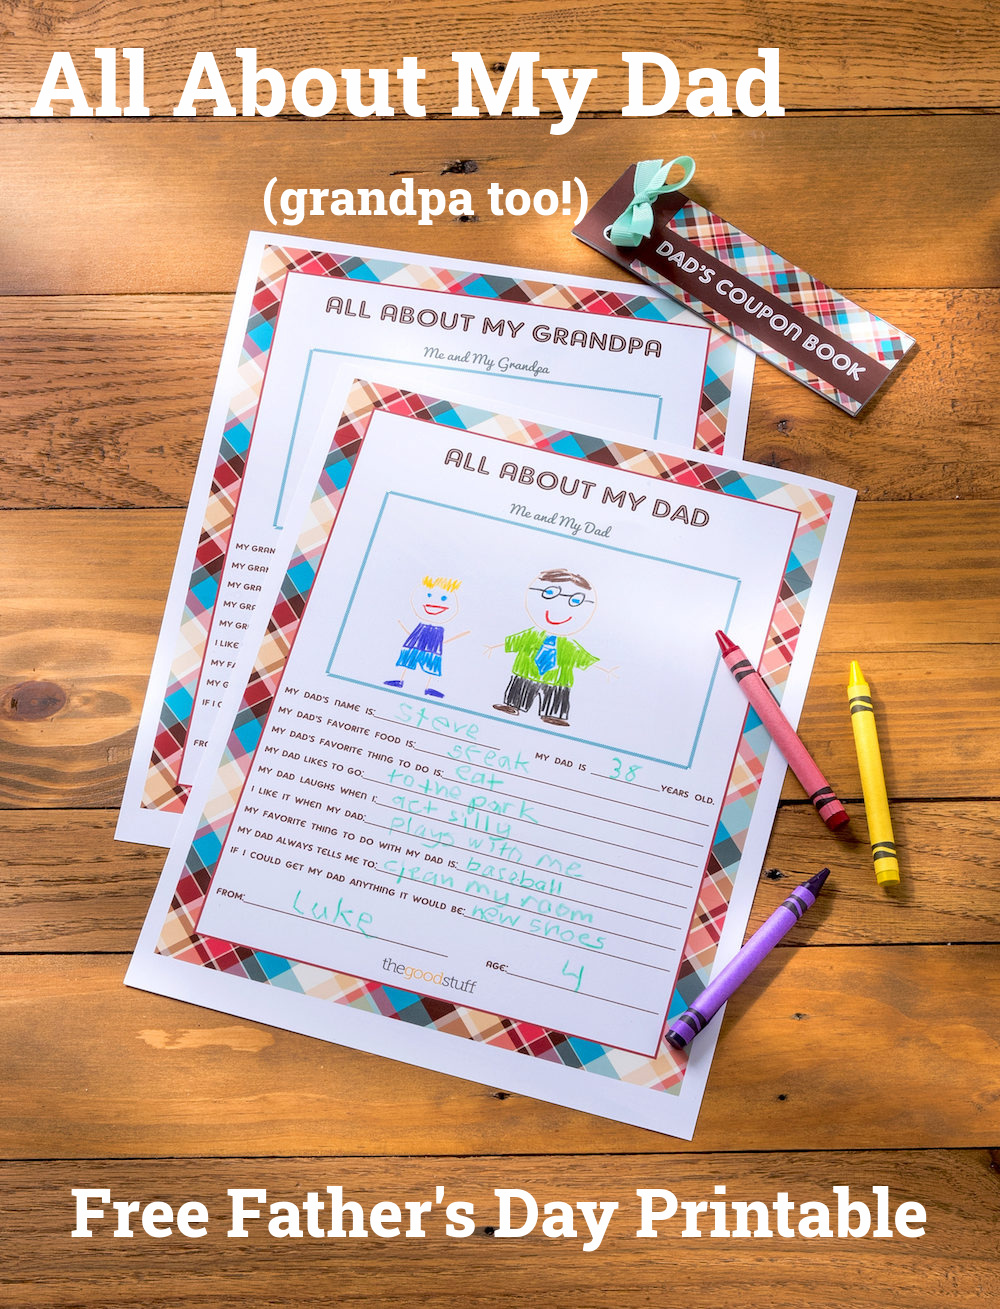 All-About-My-Dad free Father's Day printable